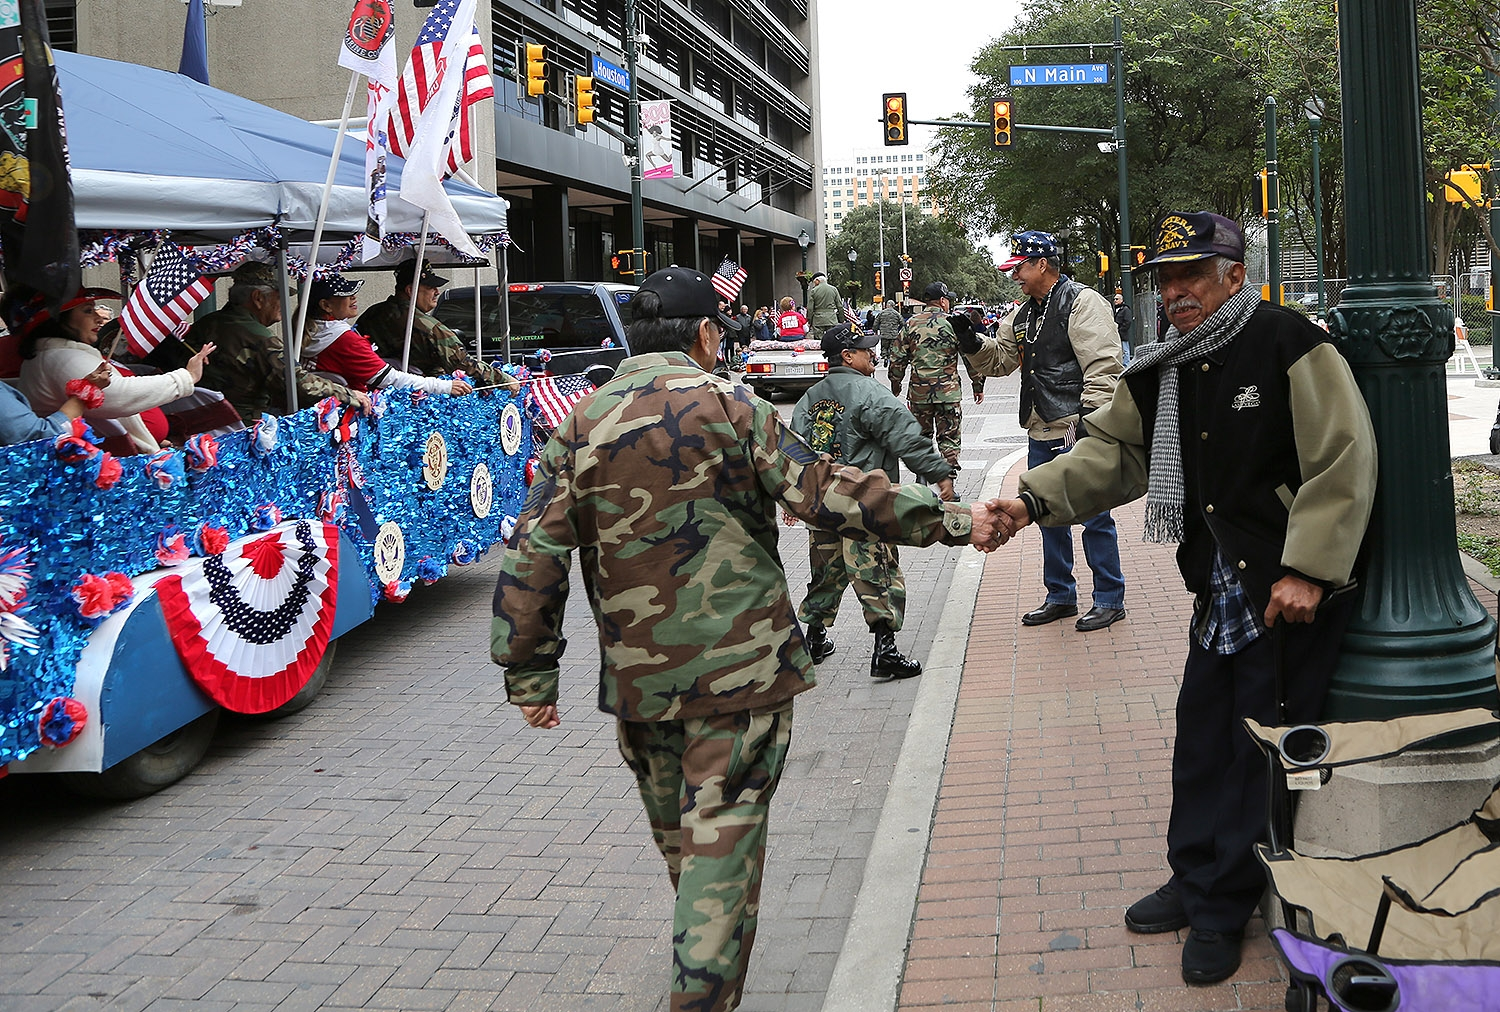 Luis Riojas, 77, A Navy veteran who served on the USS Constellation aircraft carrier in 1961-1963, greets participants of the Veterans Day Parade. <em><b>Photo by Ben Olivo | Heron</b></em>